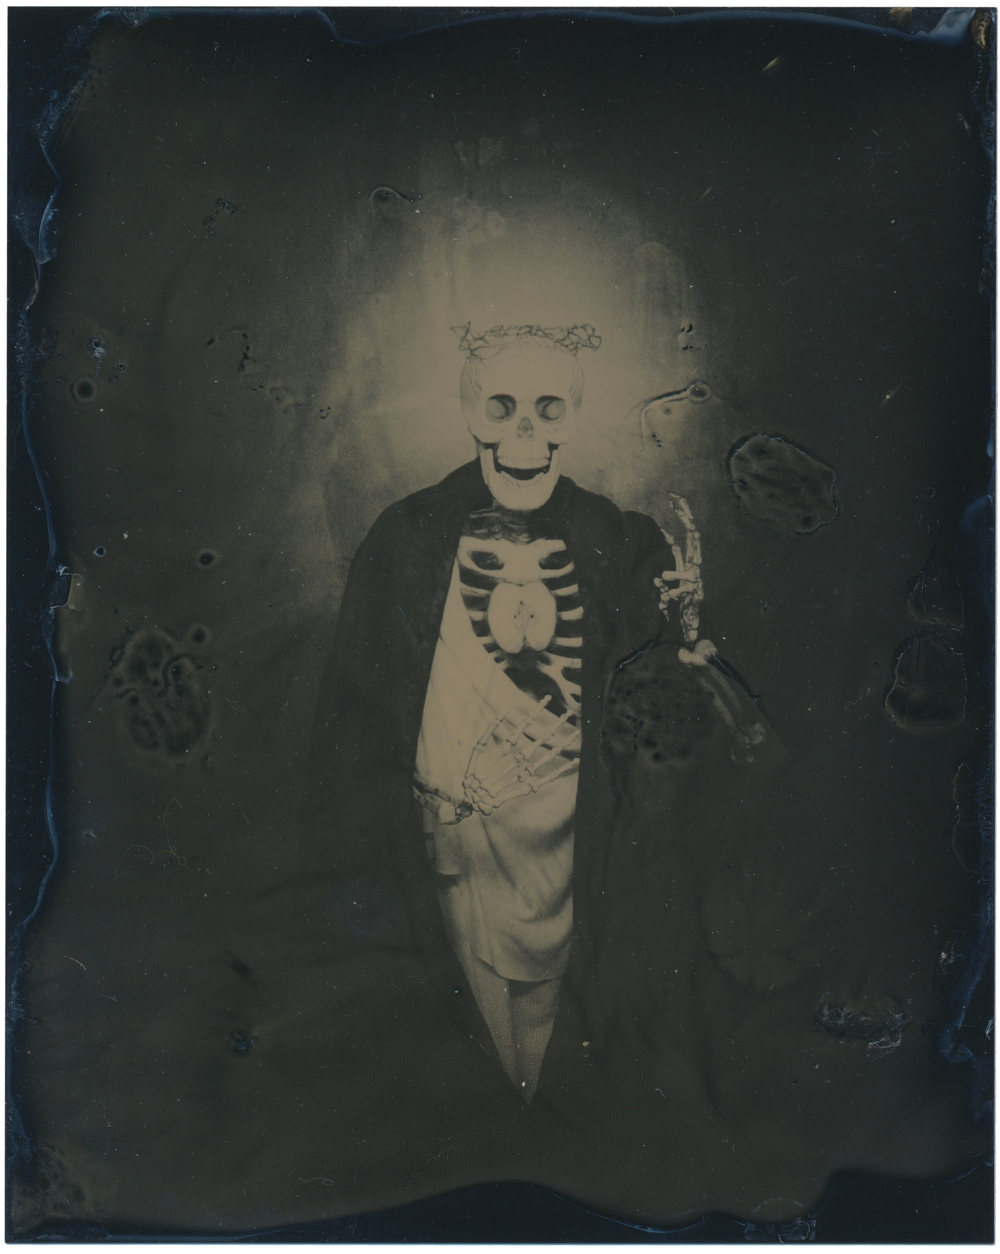 After the Sacred Heart   2015  Tintype  4x5